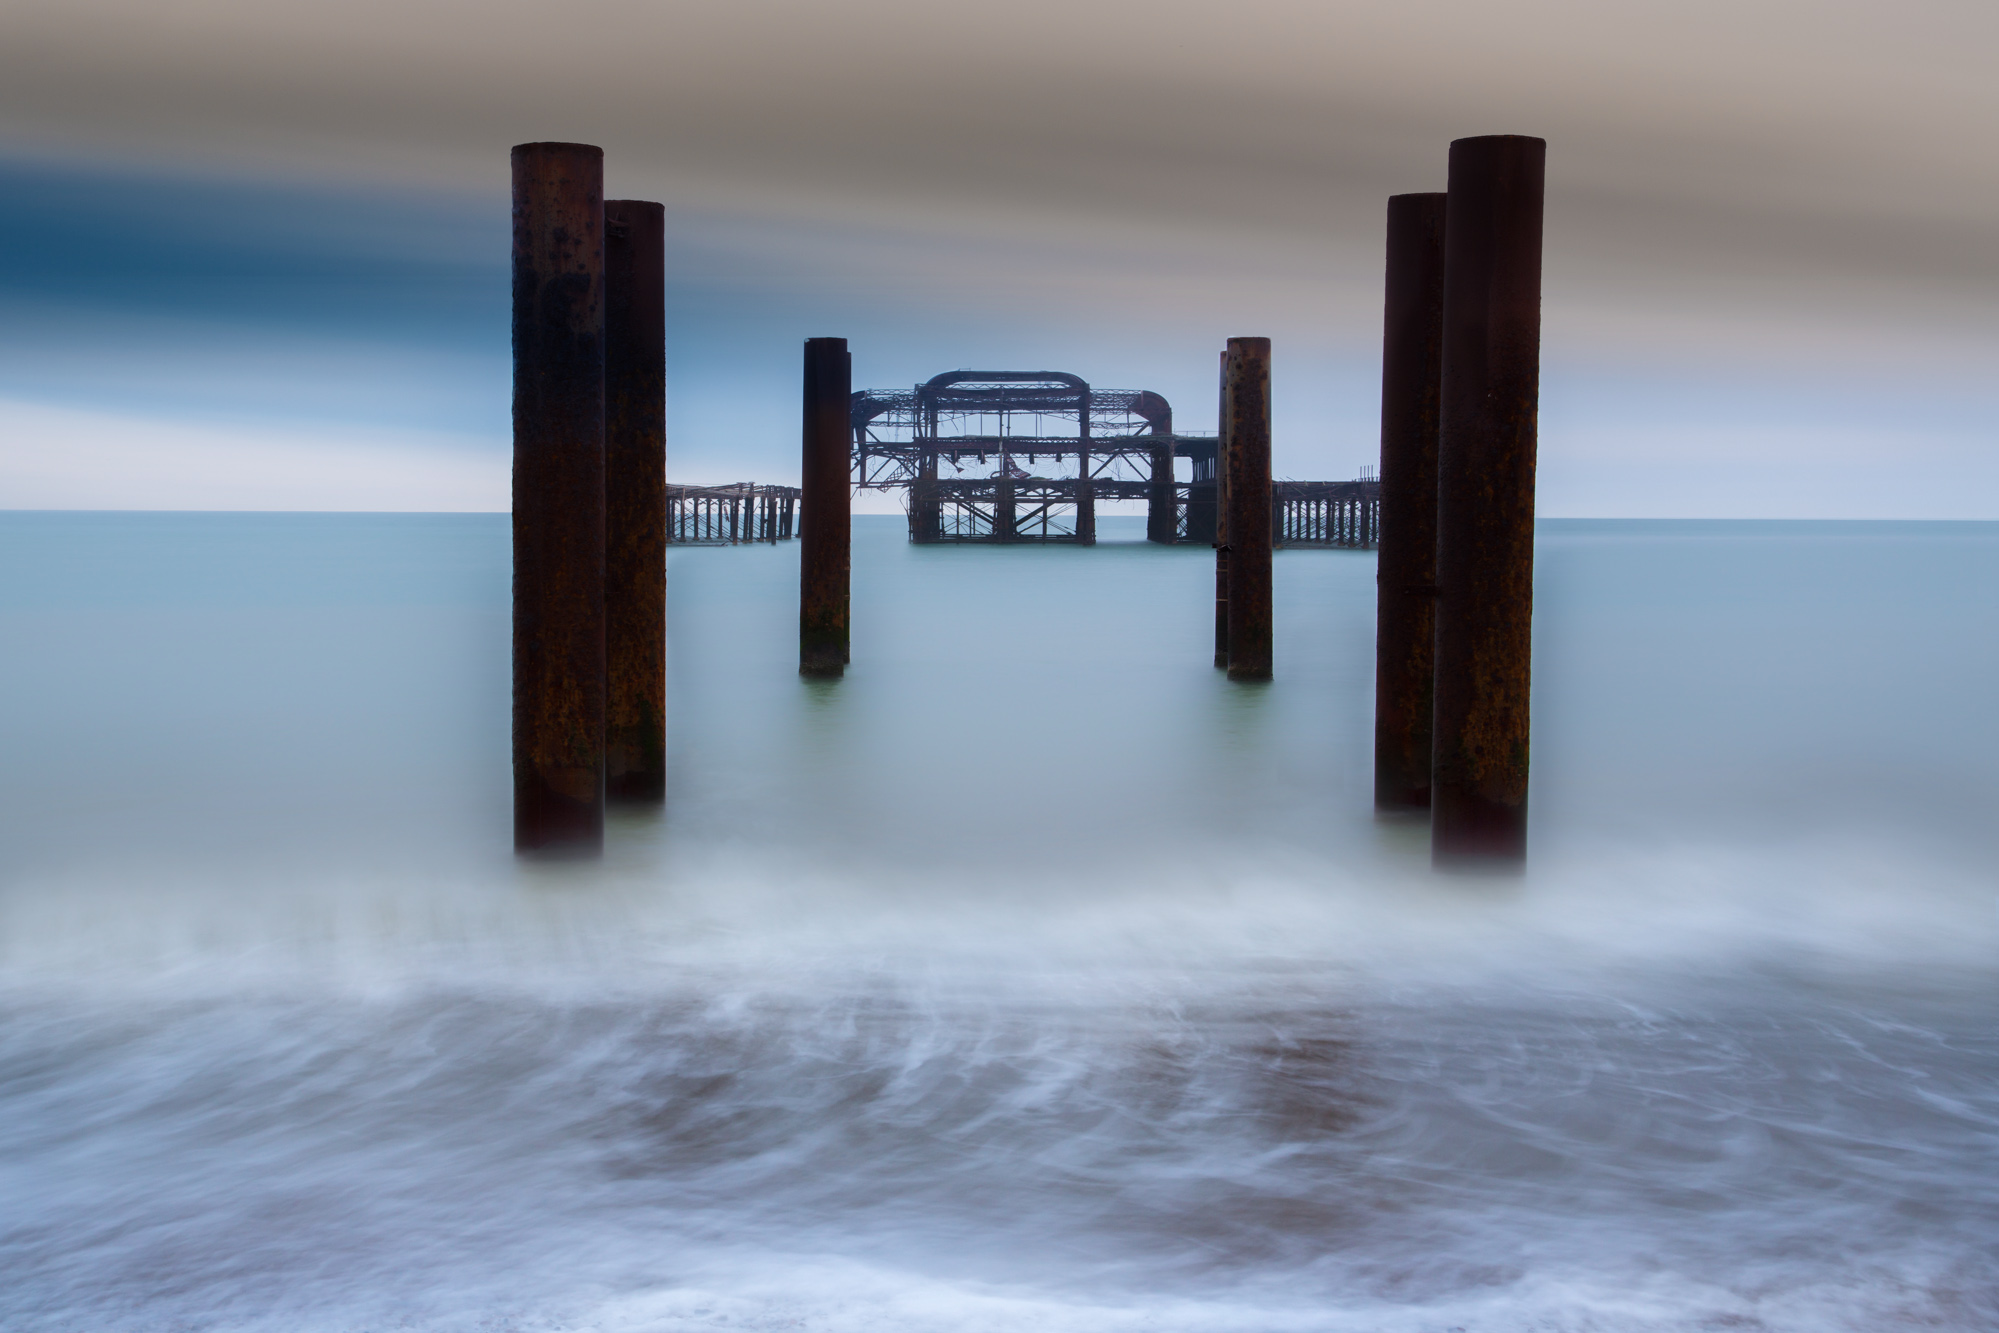 minimal long exposure photograph of the remains of the derelict West Pier in Brighton in the UK